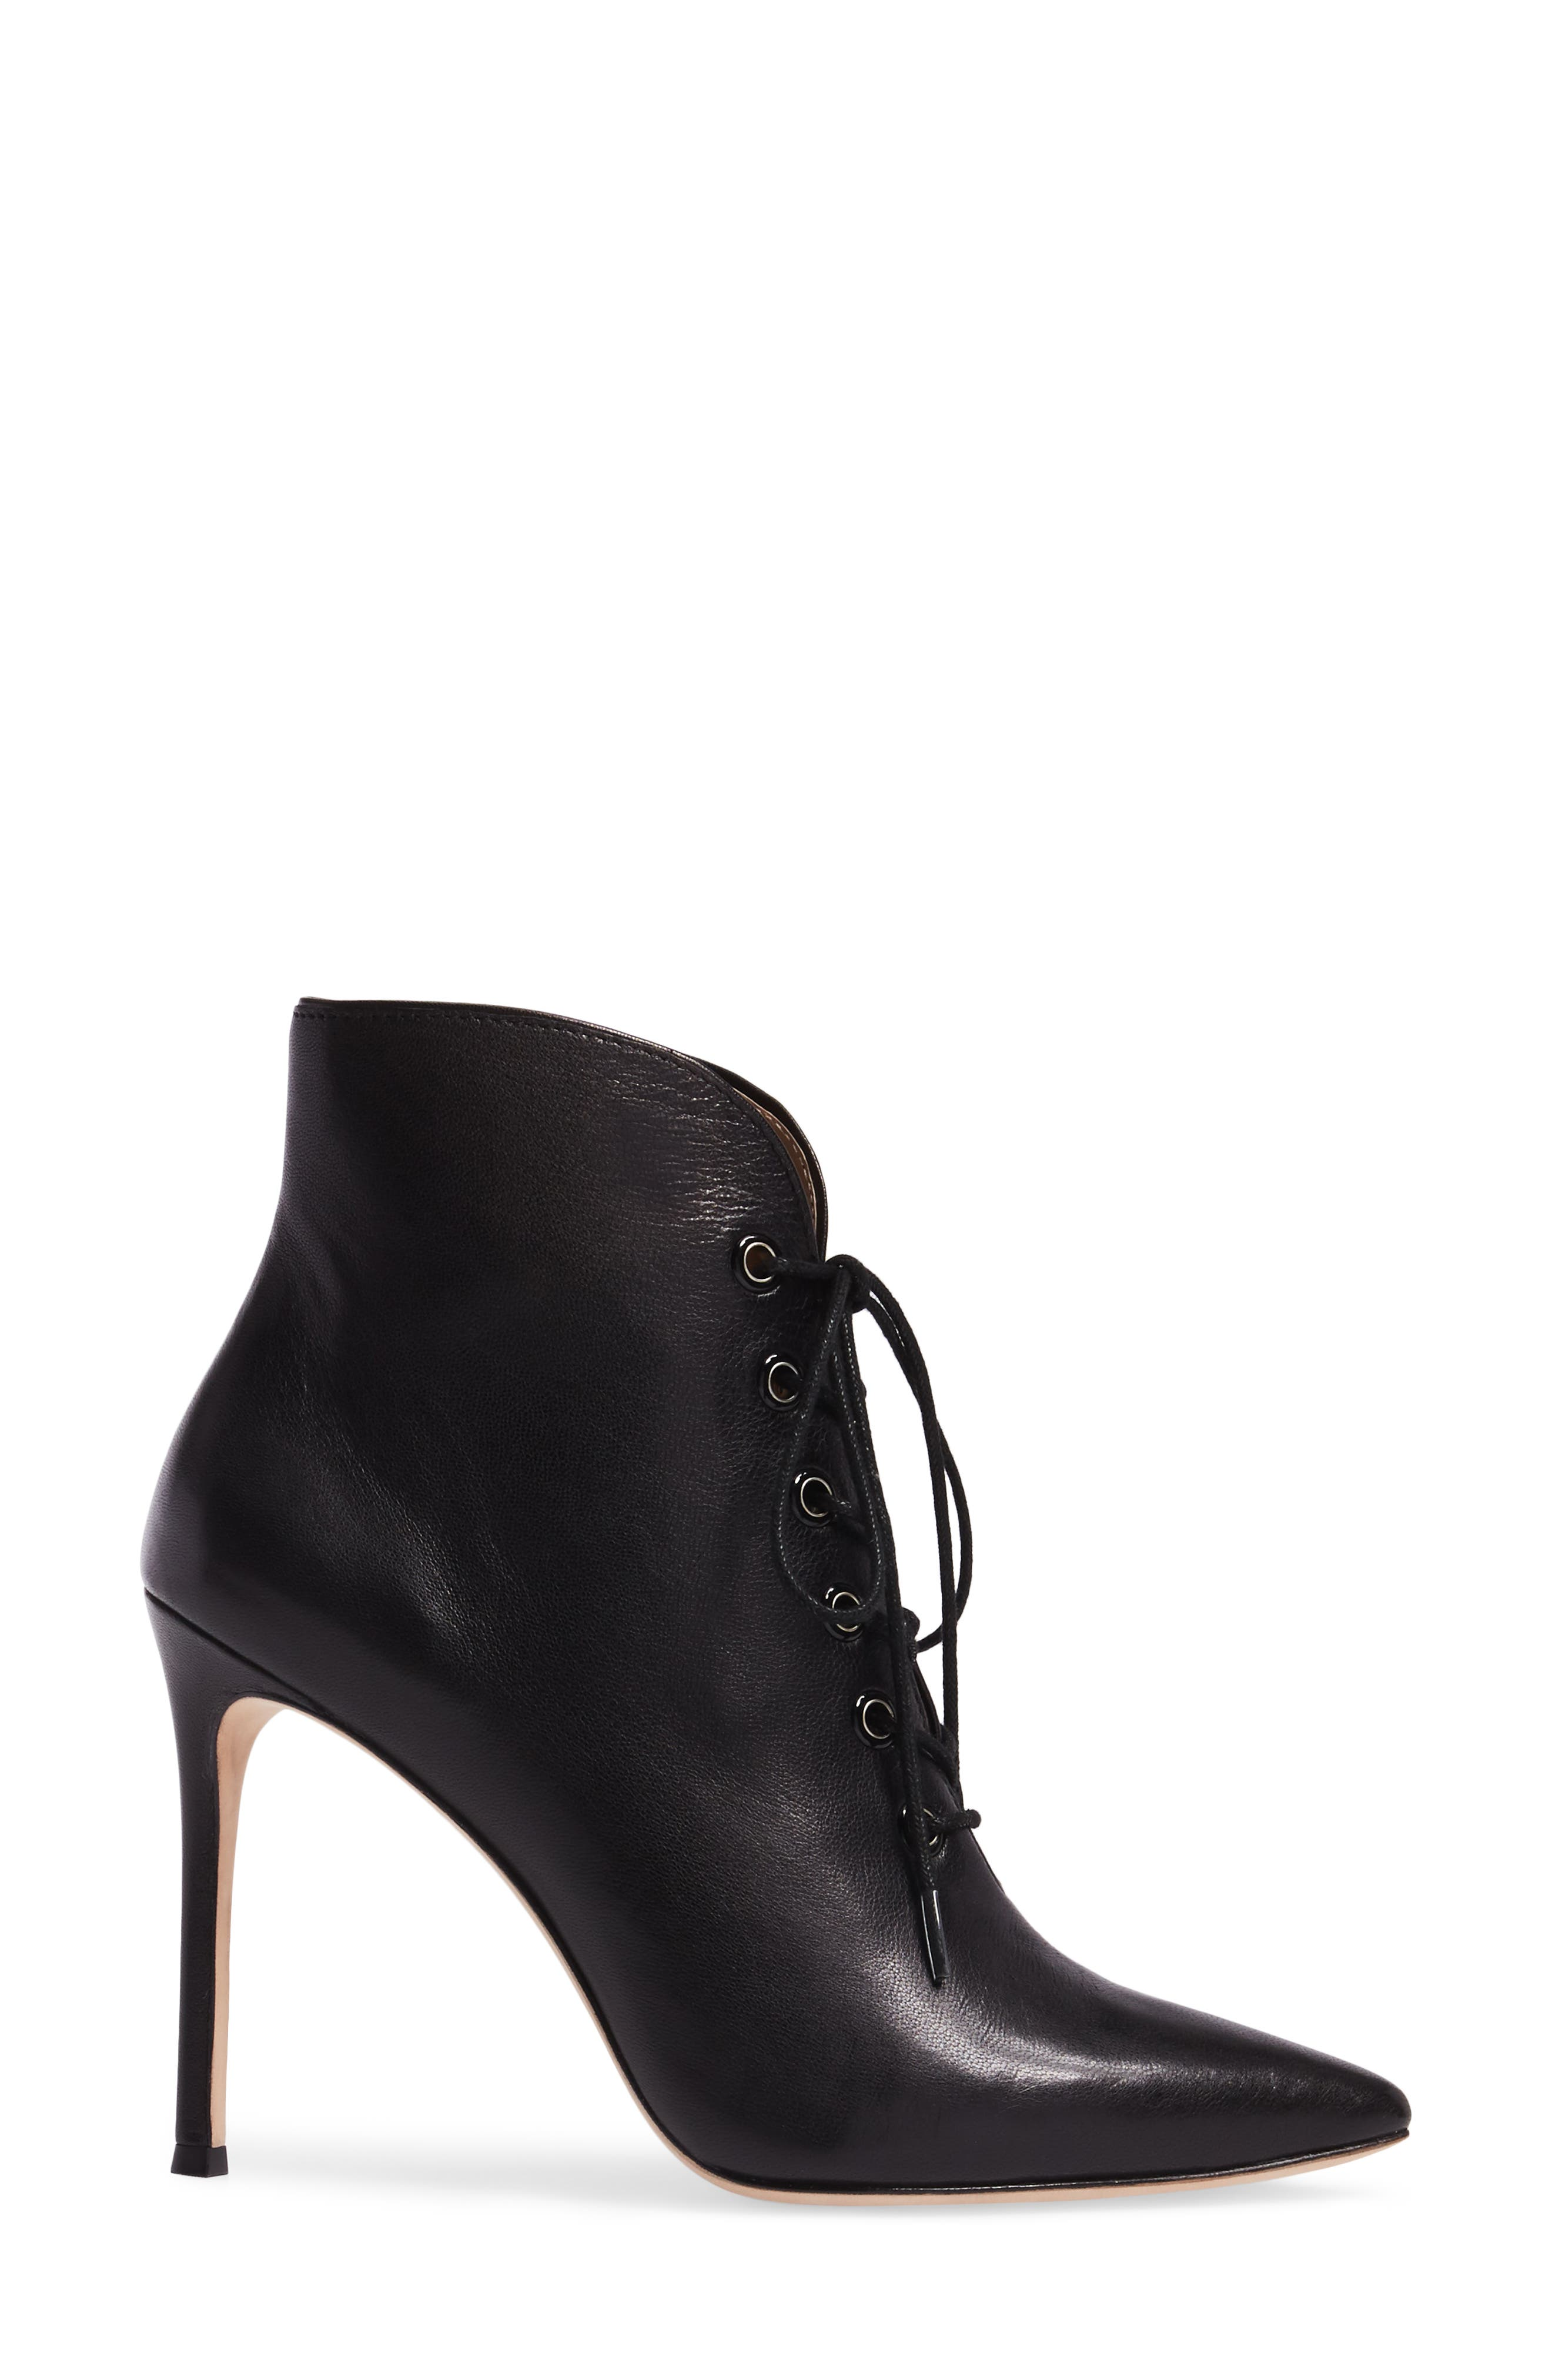 Cari Pointy Toe Bootie,                             Alternate thumbnail 3, color,                             001